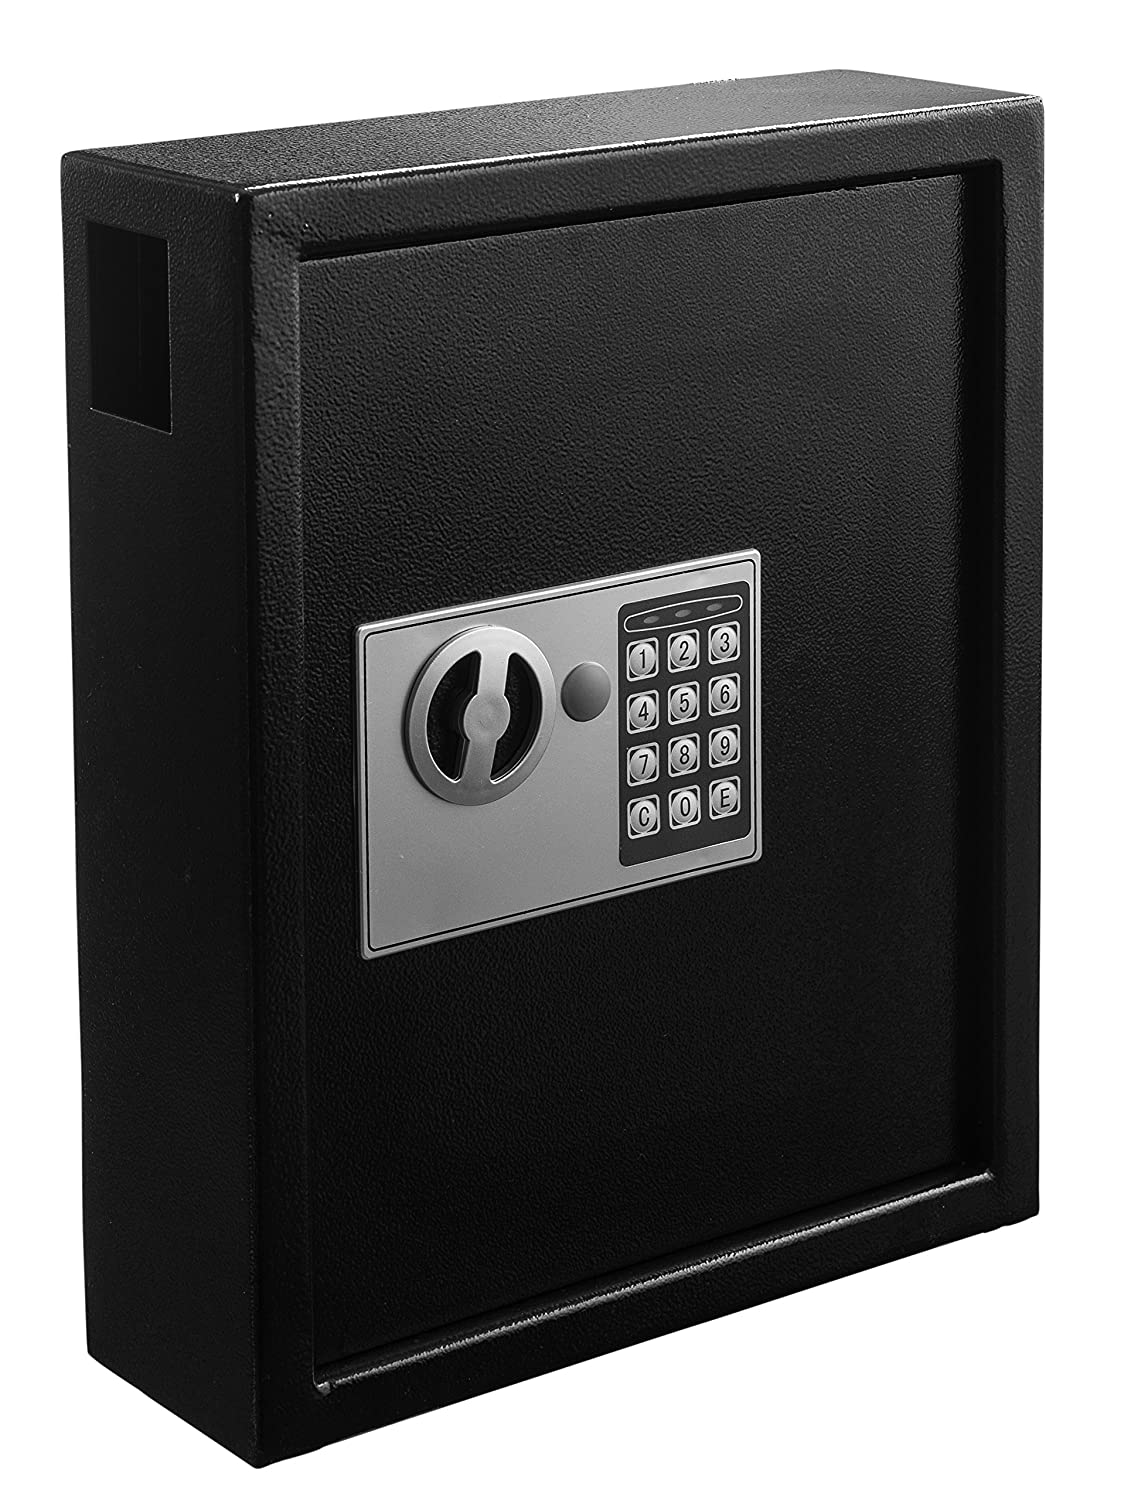 AdirOffice 40 Keys Cabinet with Digital Lock - Electronic Key Safe - Pin Code Keyless Storage Box For Keys - Secure Steel Lock box - Scratch Resistant Powder Coated - Wall Anchor- Black